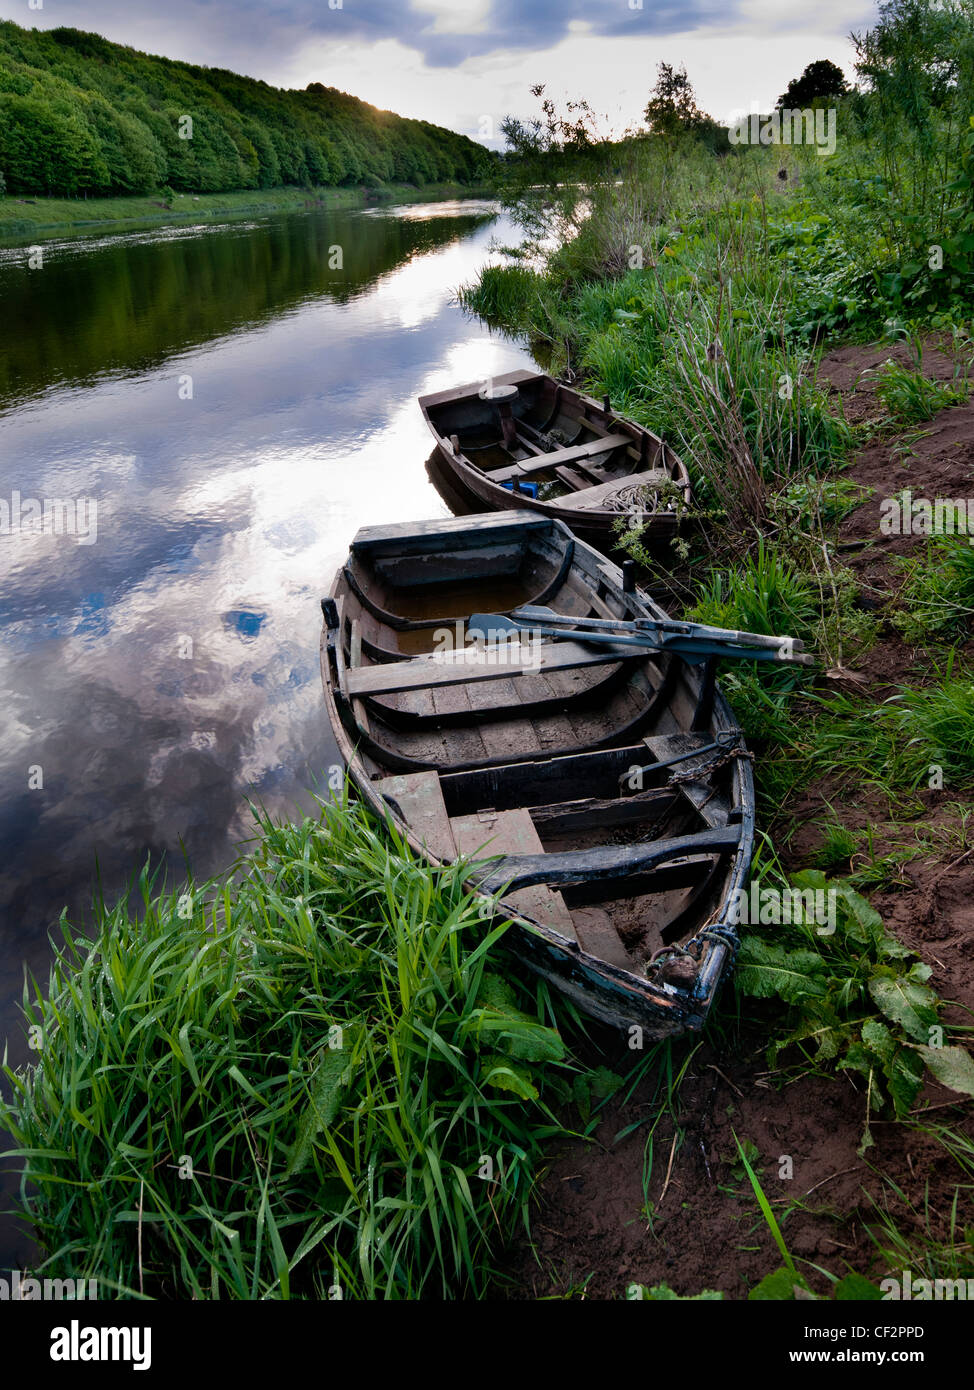 Old fishing boats on the riverbank of the River Tweed. - Stock Image